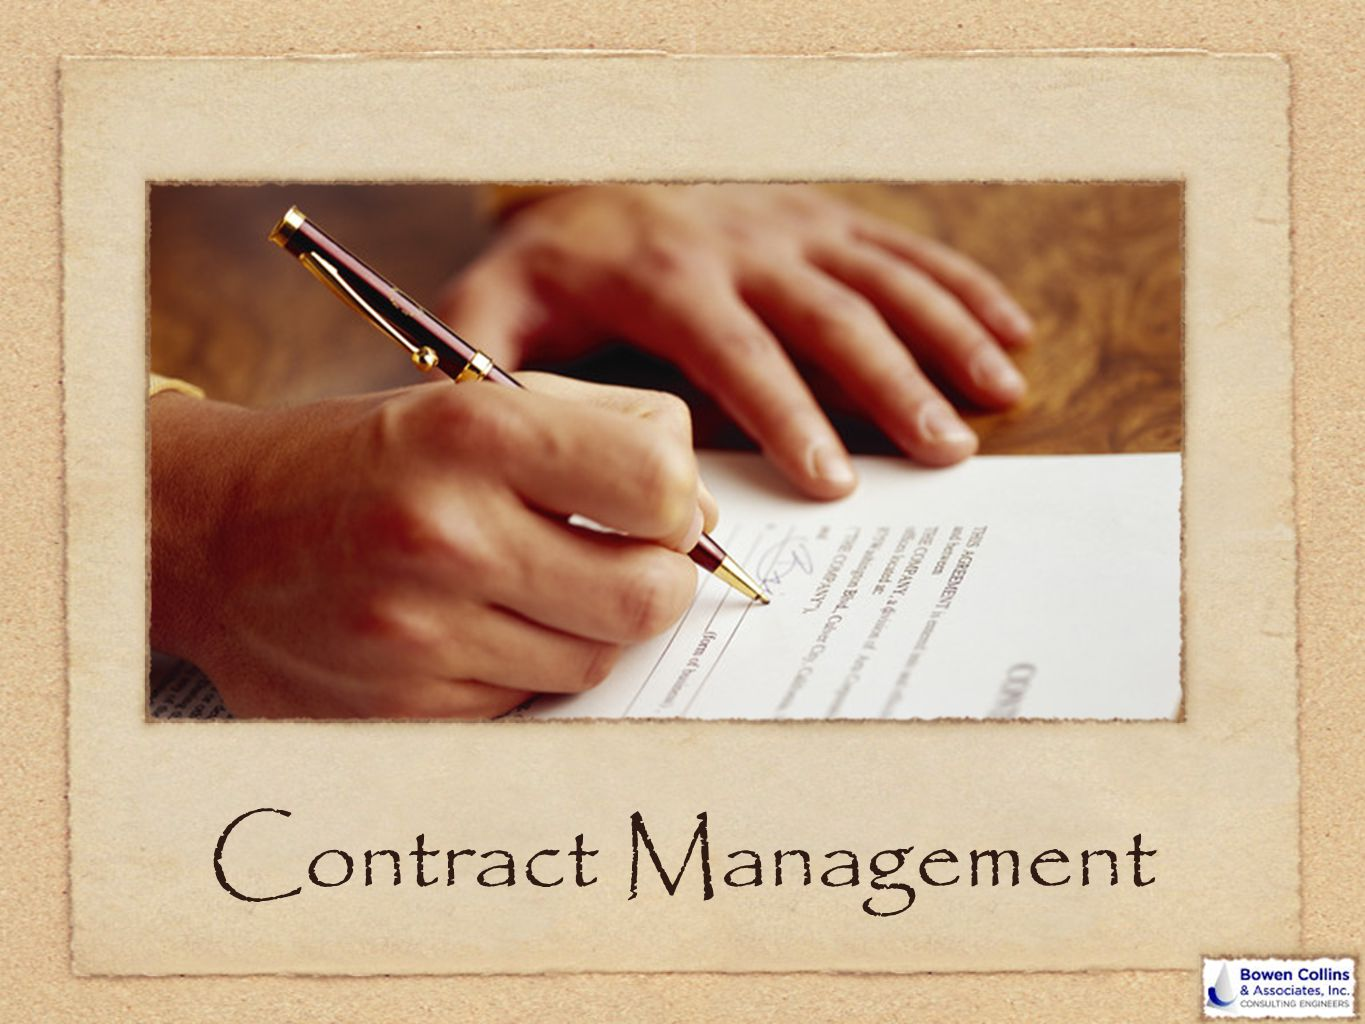 Contract Management Smile and make eye contact